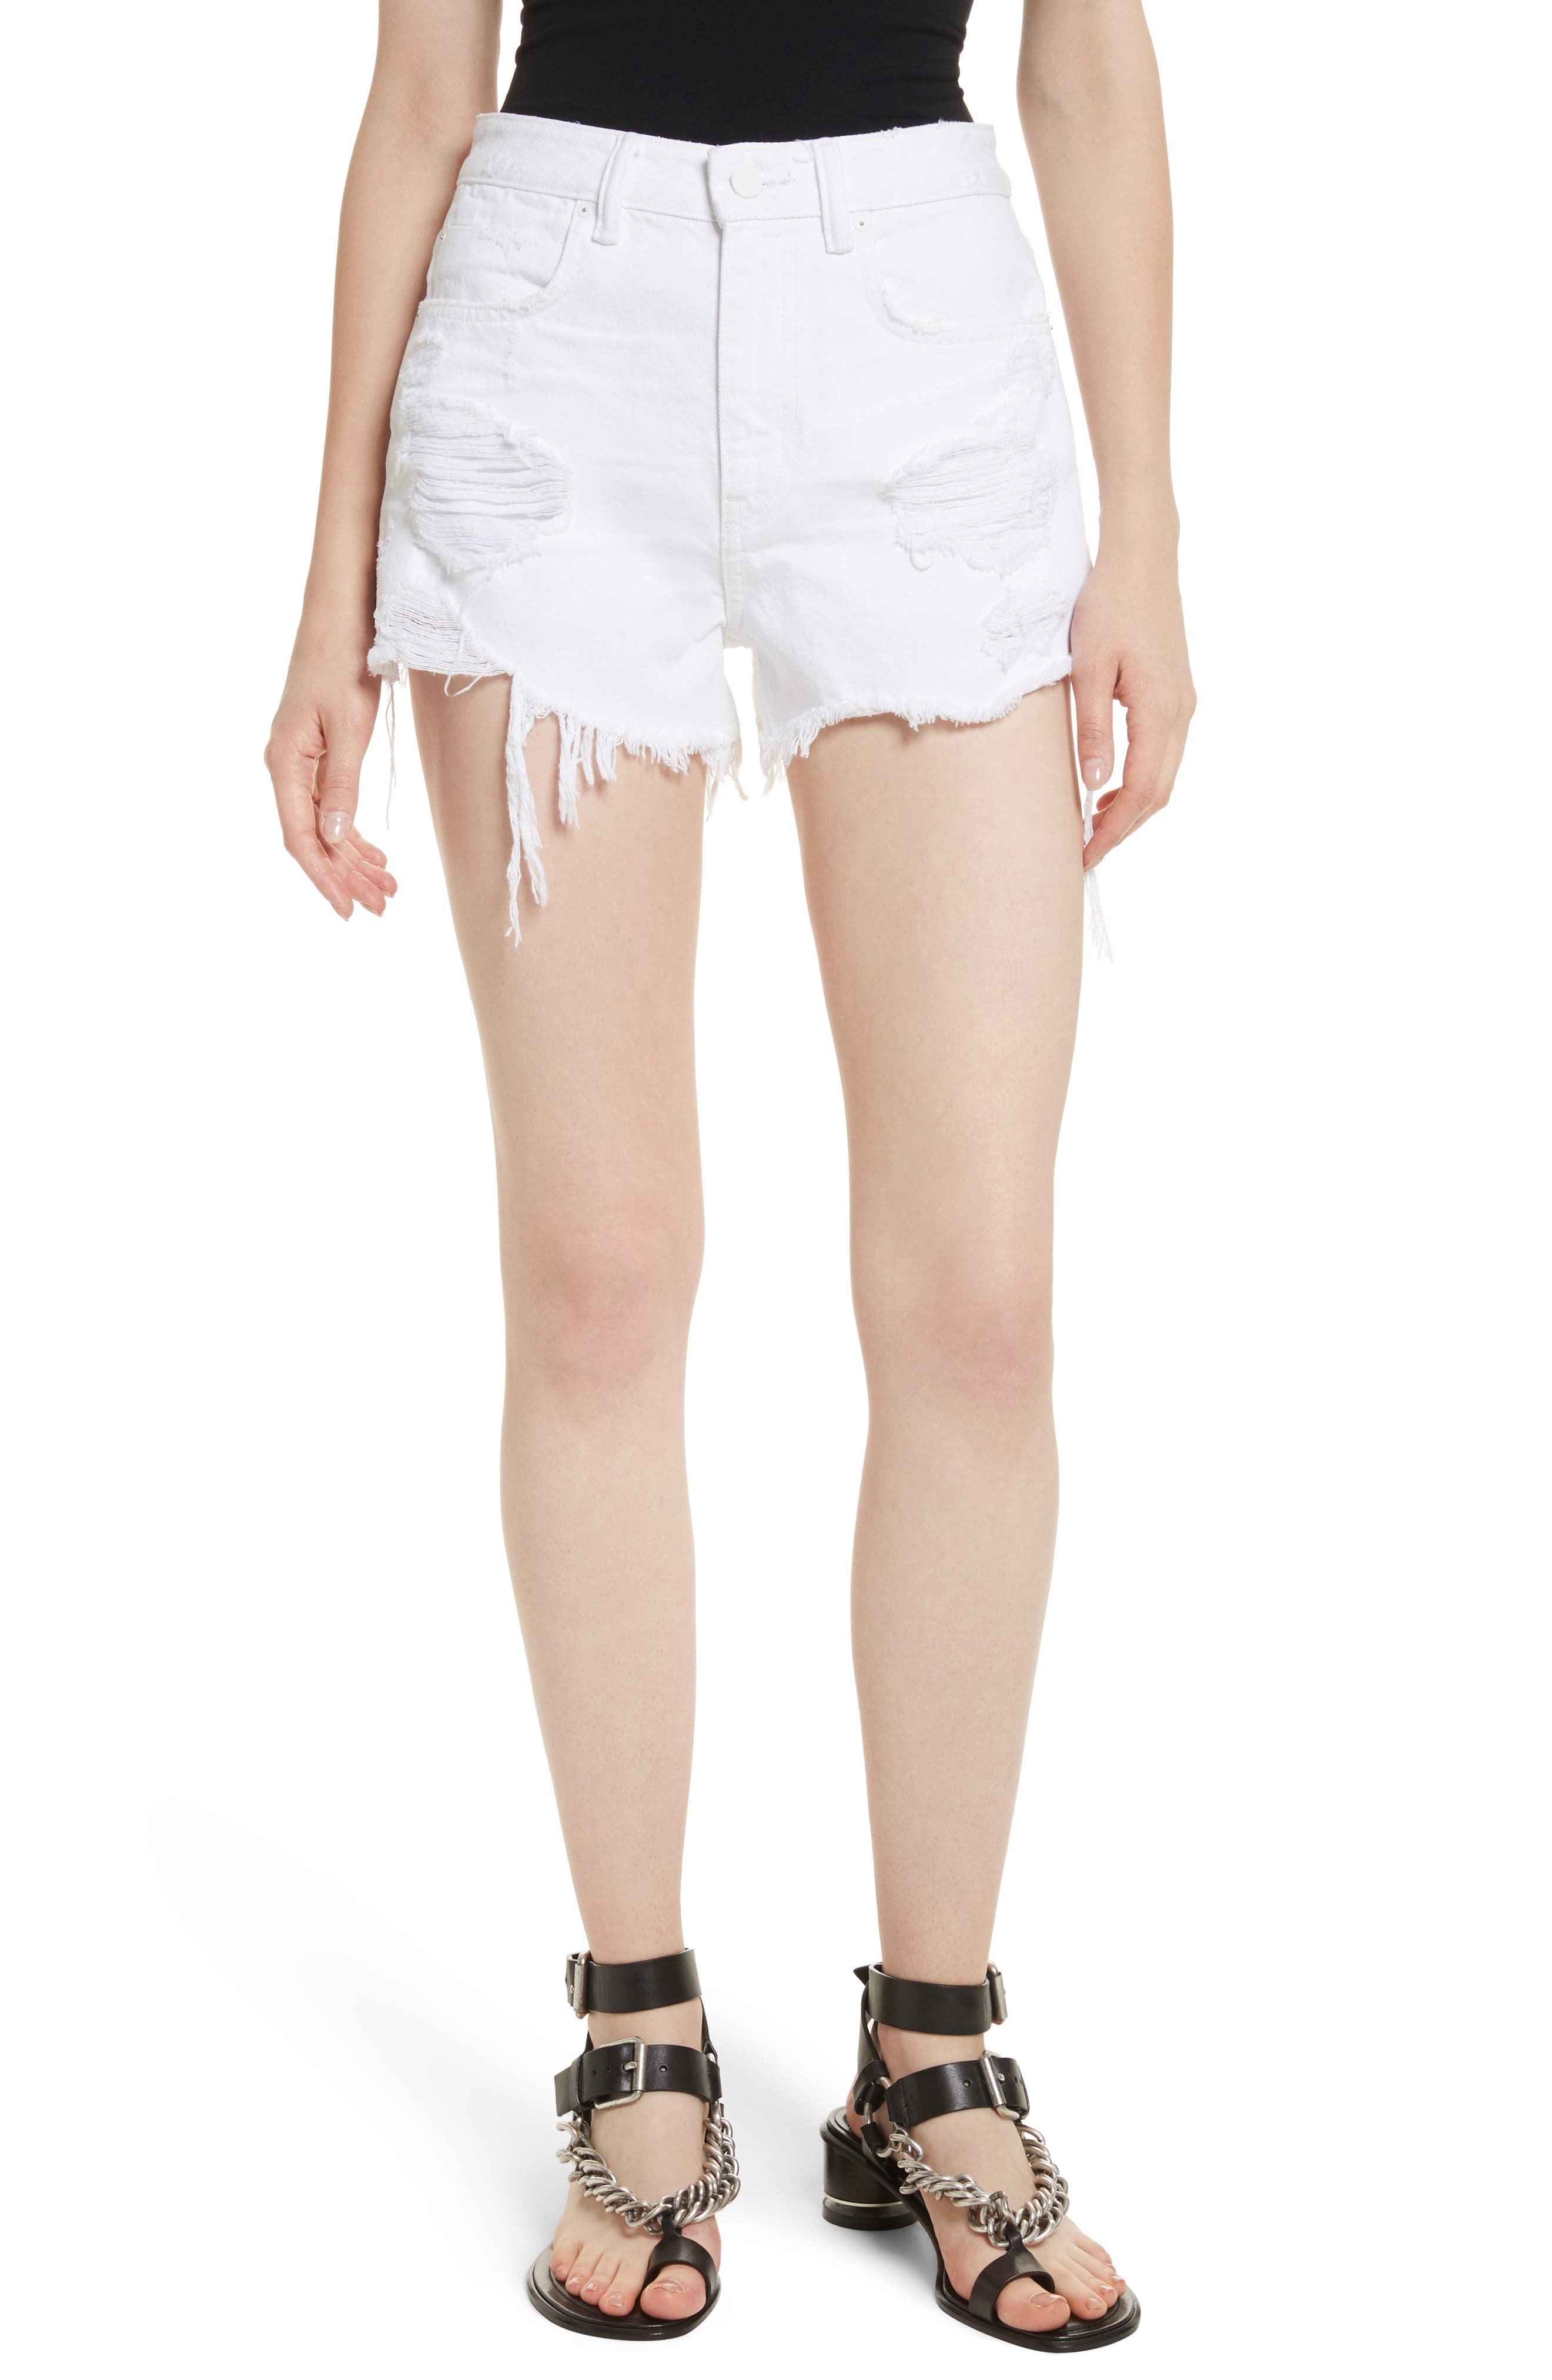 Bite White Ripped Denim Shorts,                         Main,                         color, Bleached Destroy